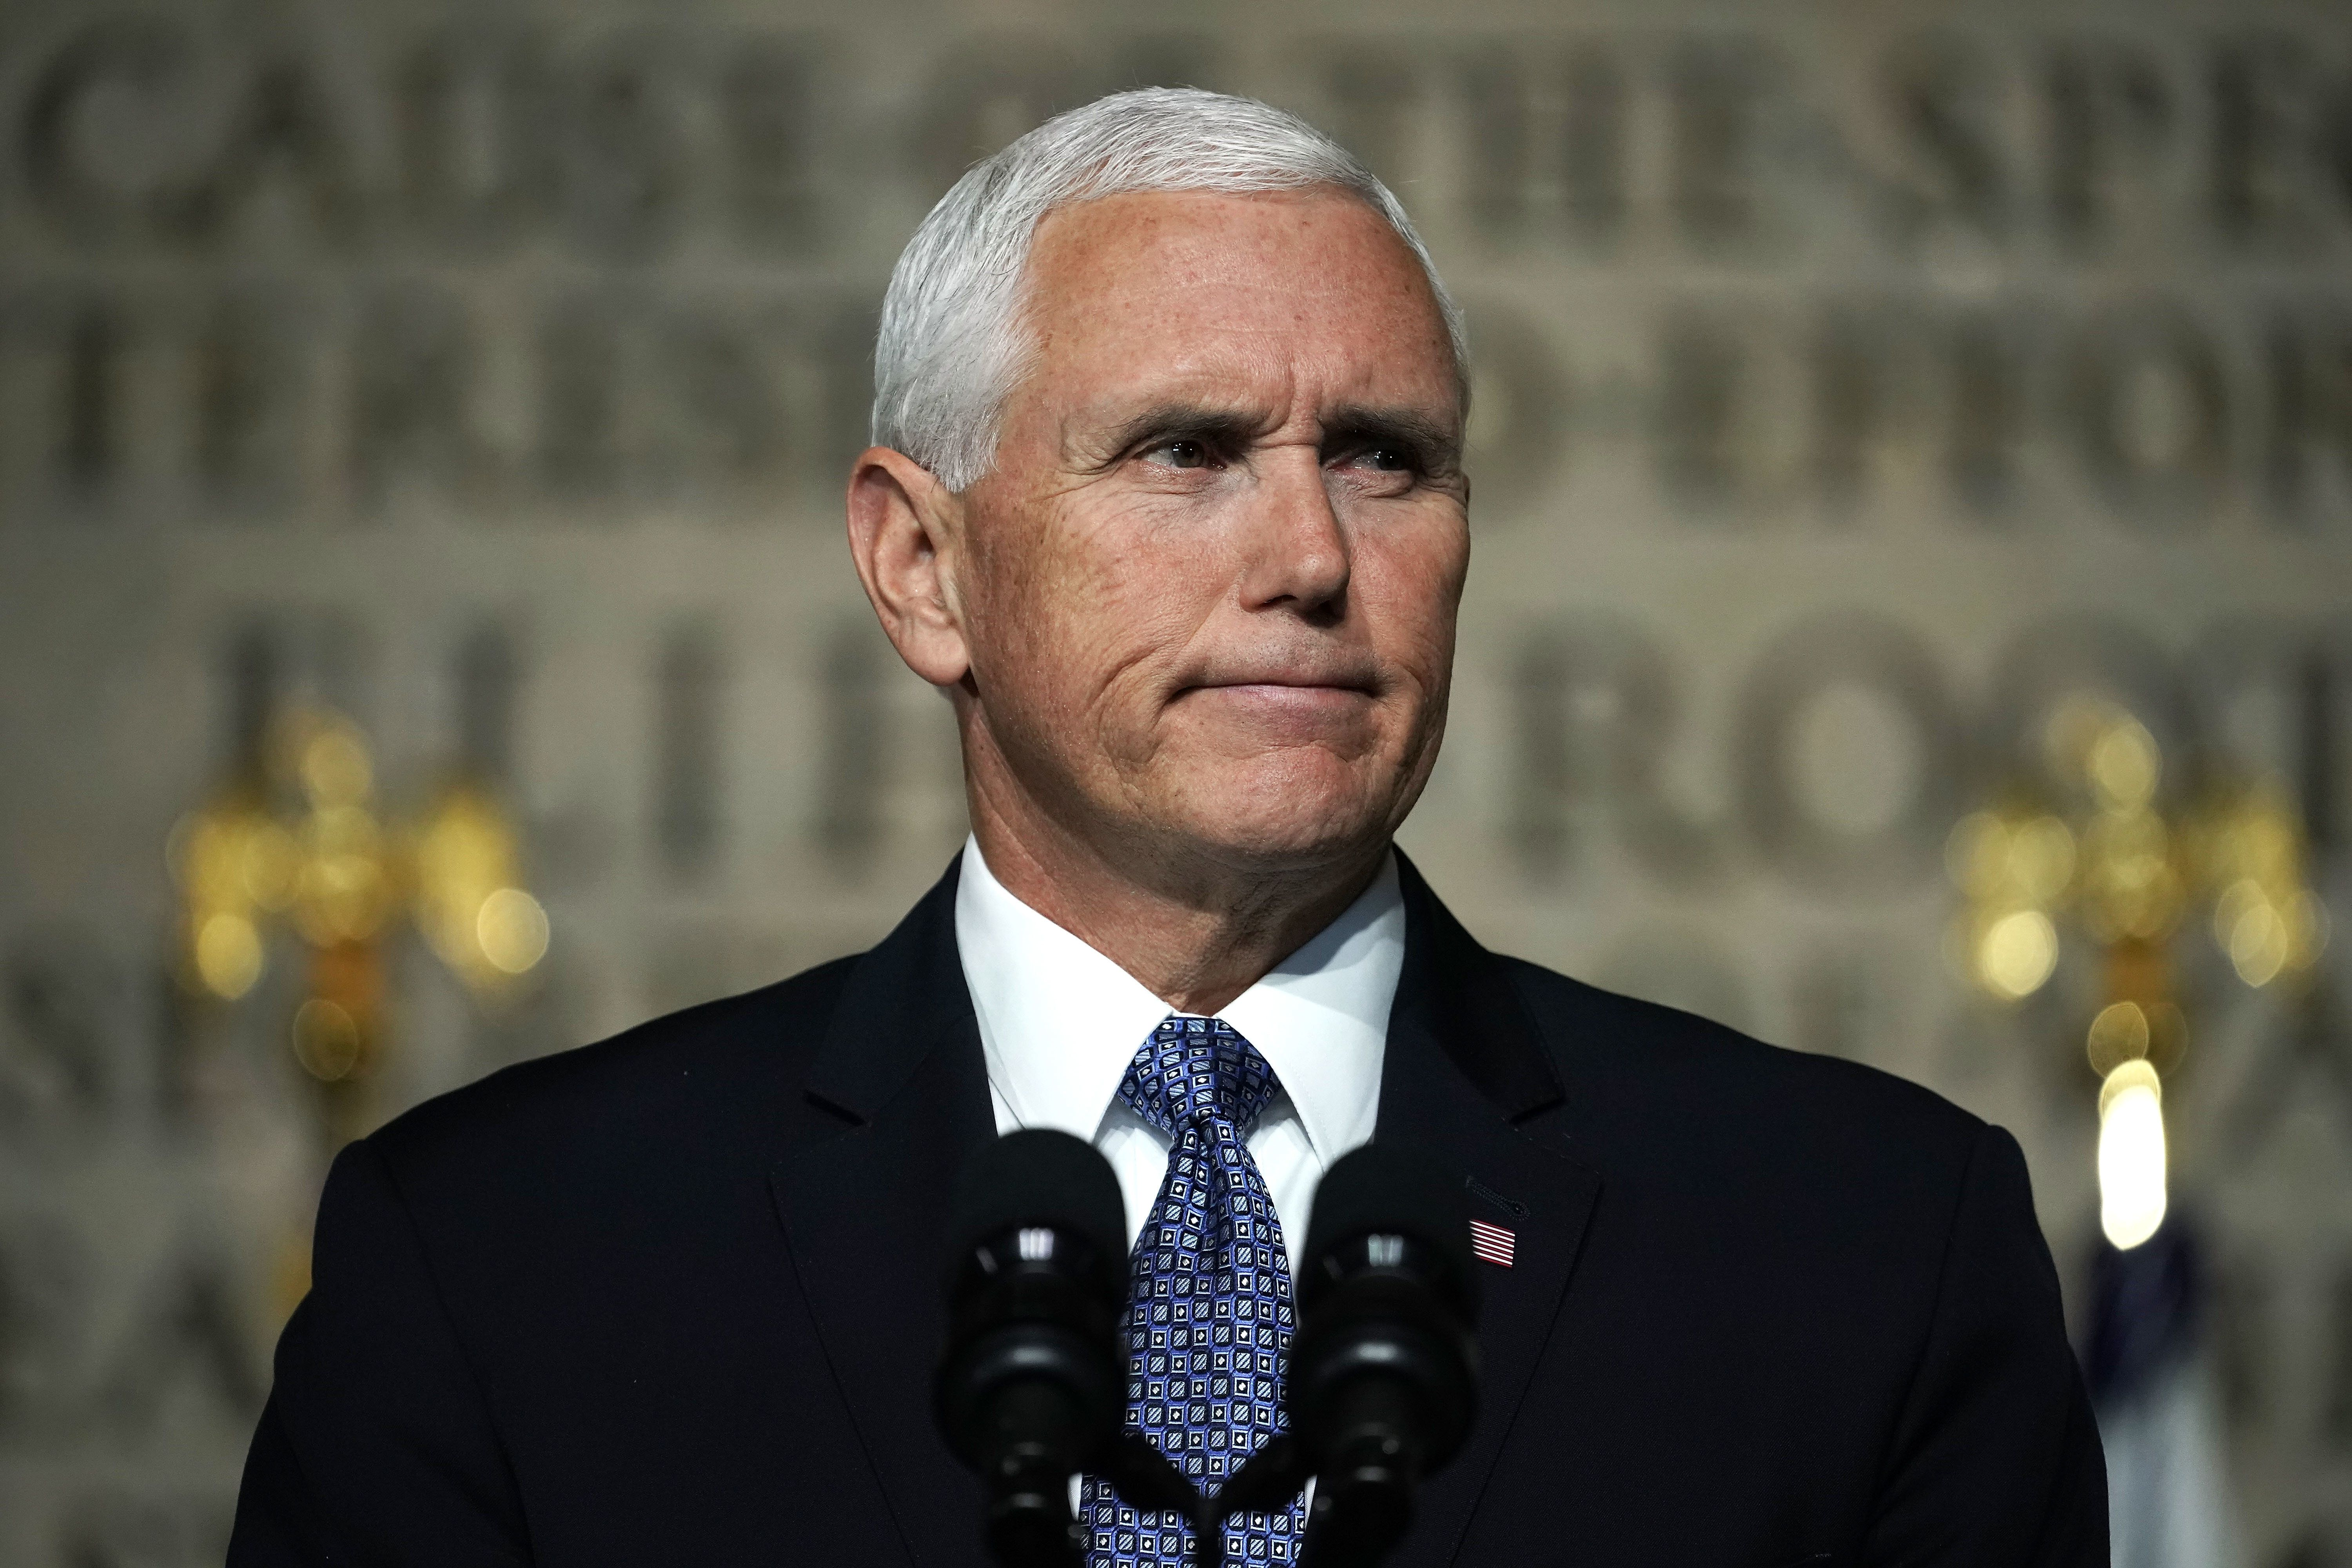 WASHINGTON, DC - OCTOBER 23:  U.S. Vice President Mike Pence speaks during the fourth meeting of the National Space Council at National Defense University at Fort McNair October 23, 2018 in Washington, DC. Vice President Pence held the meeting to discuss the progress for President Donald Trump's plan for a Space Force.  (Photo by Alex Wong/Getty Images)